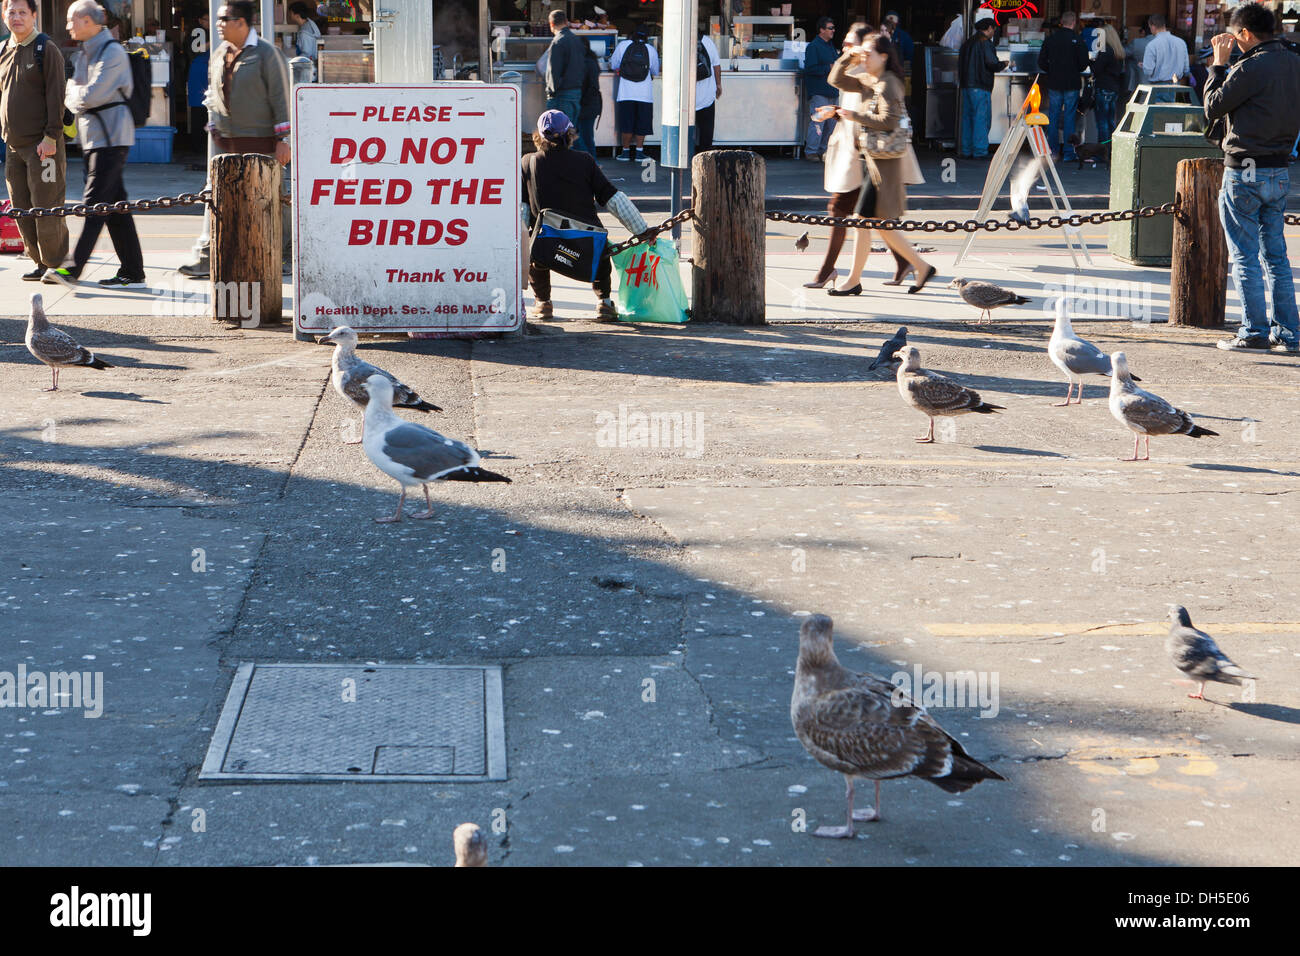 Do Not Feed the Birds sign at Fisherman's Wharf - San Francisco, California USA - Stock Image